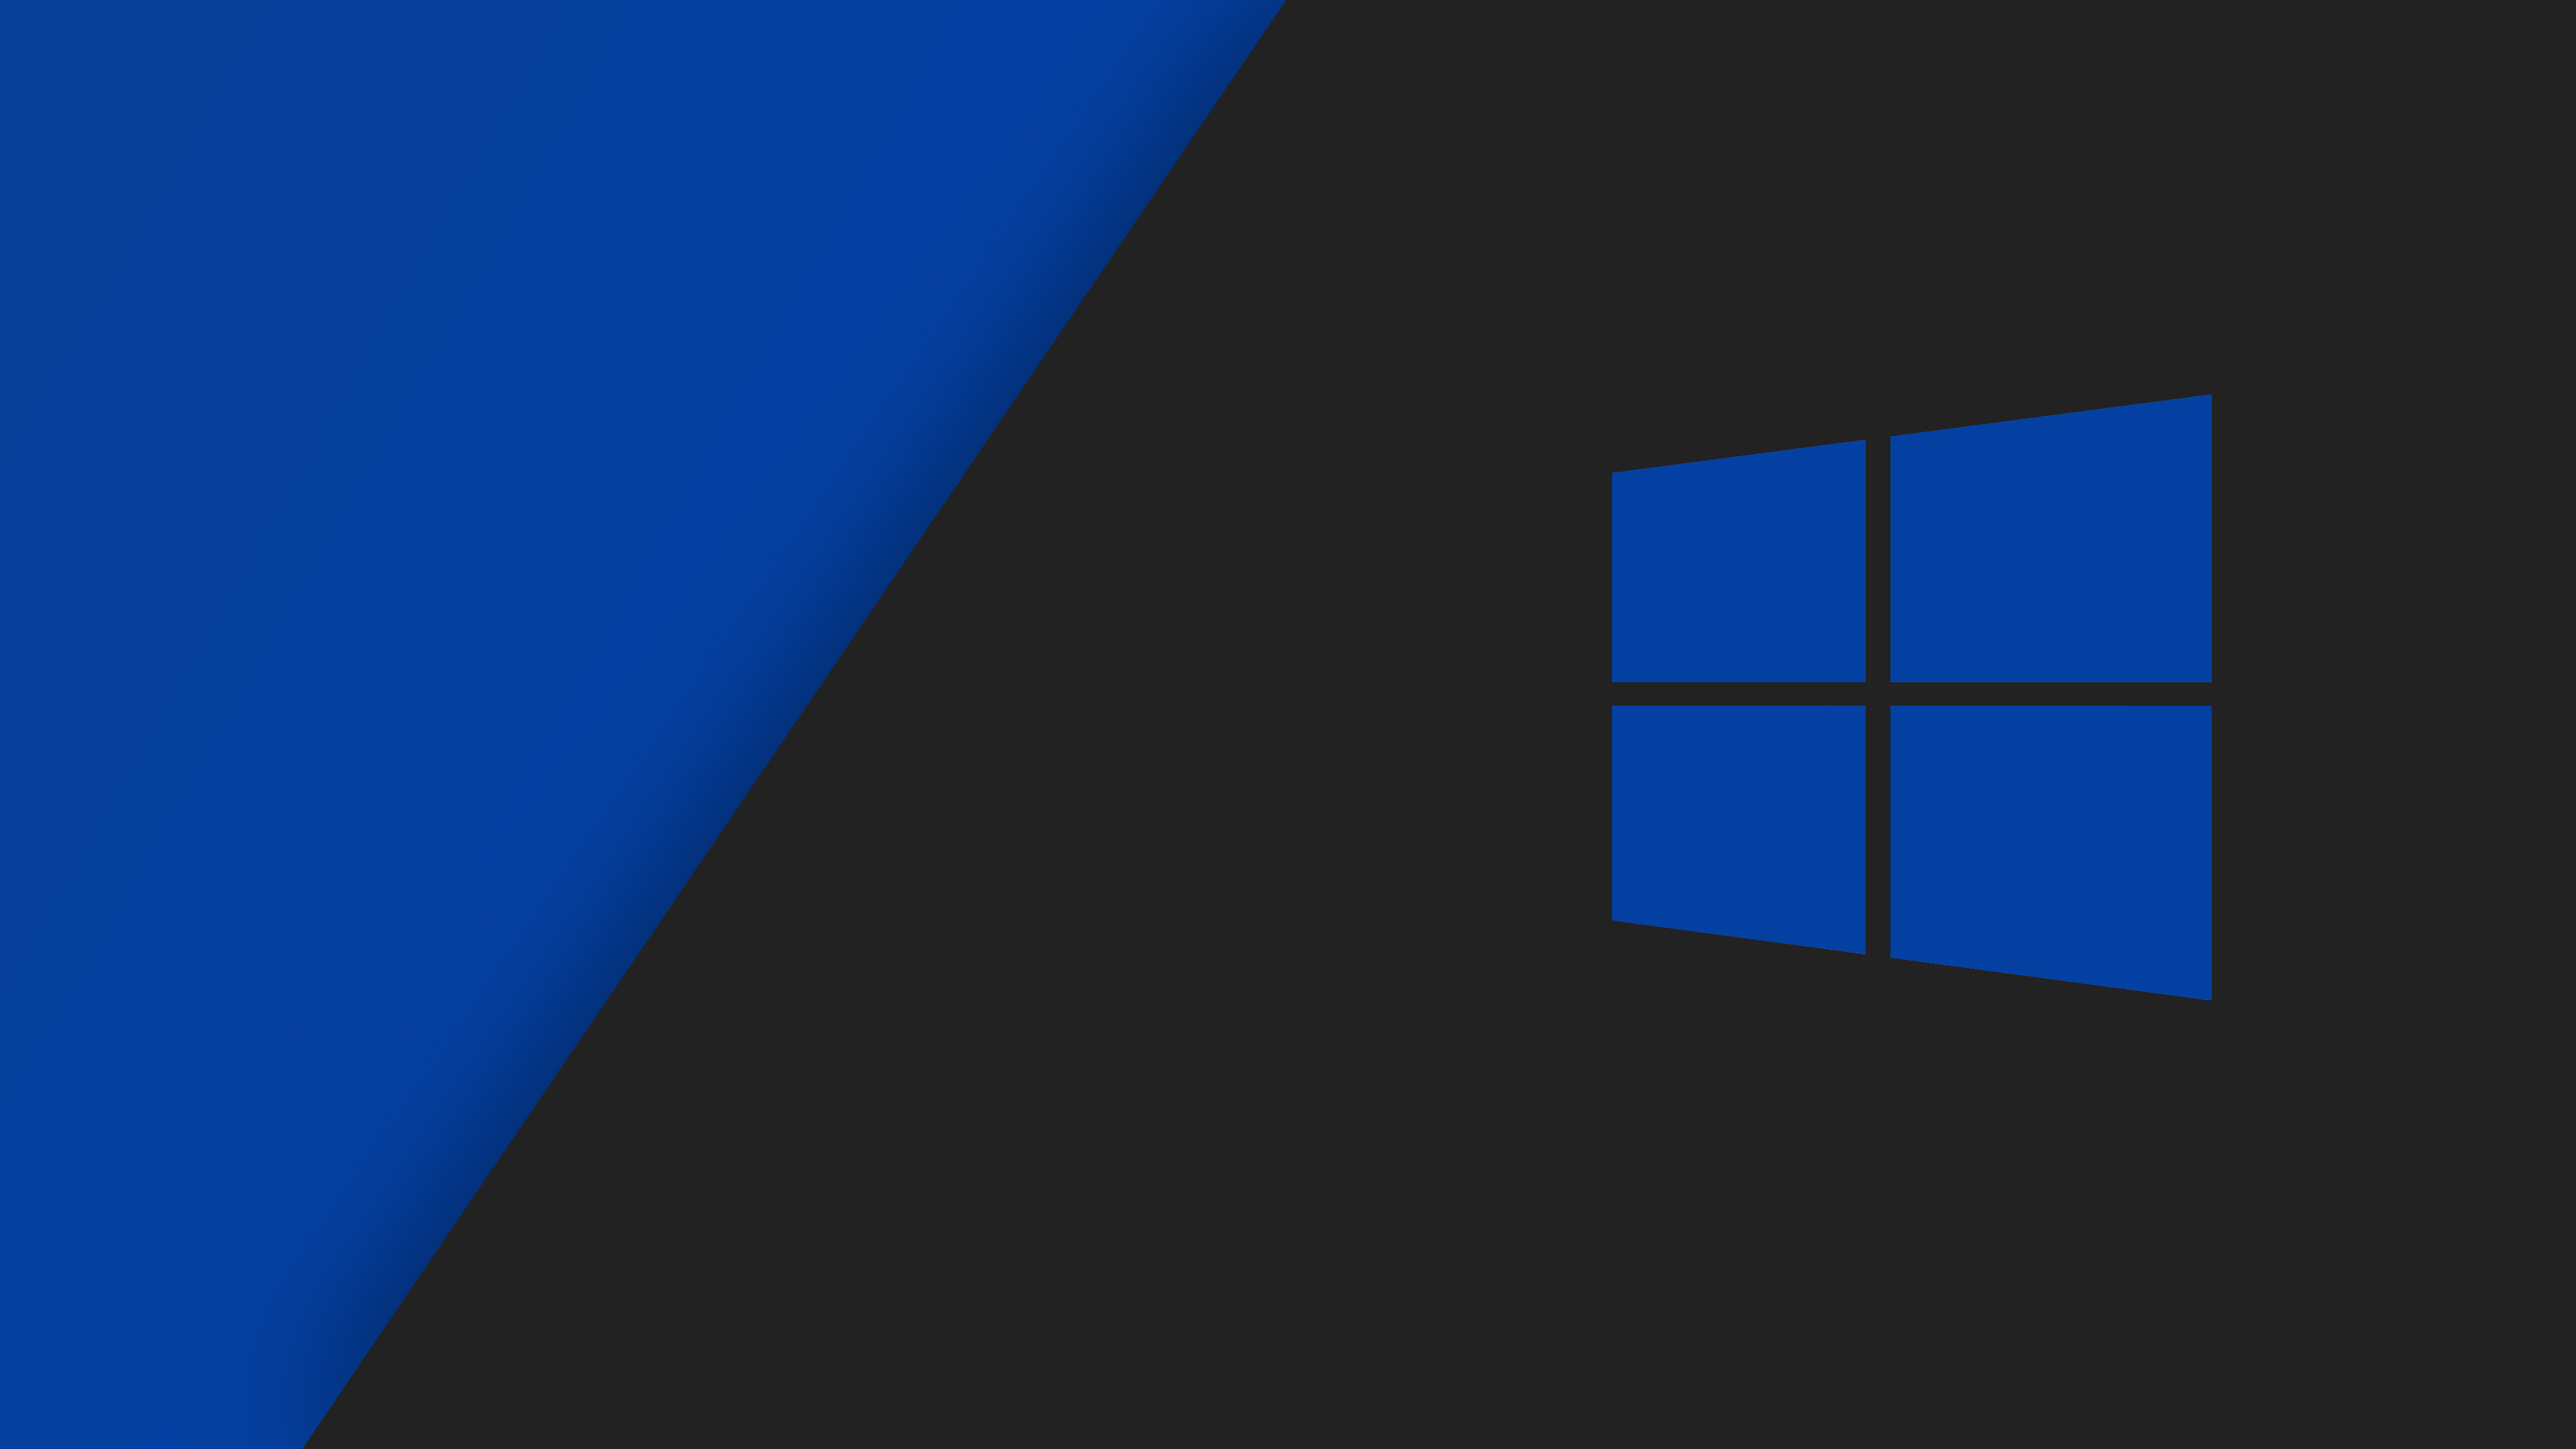 Wallpaper World Windows 10 Dark Theme Wallpaper 4k